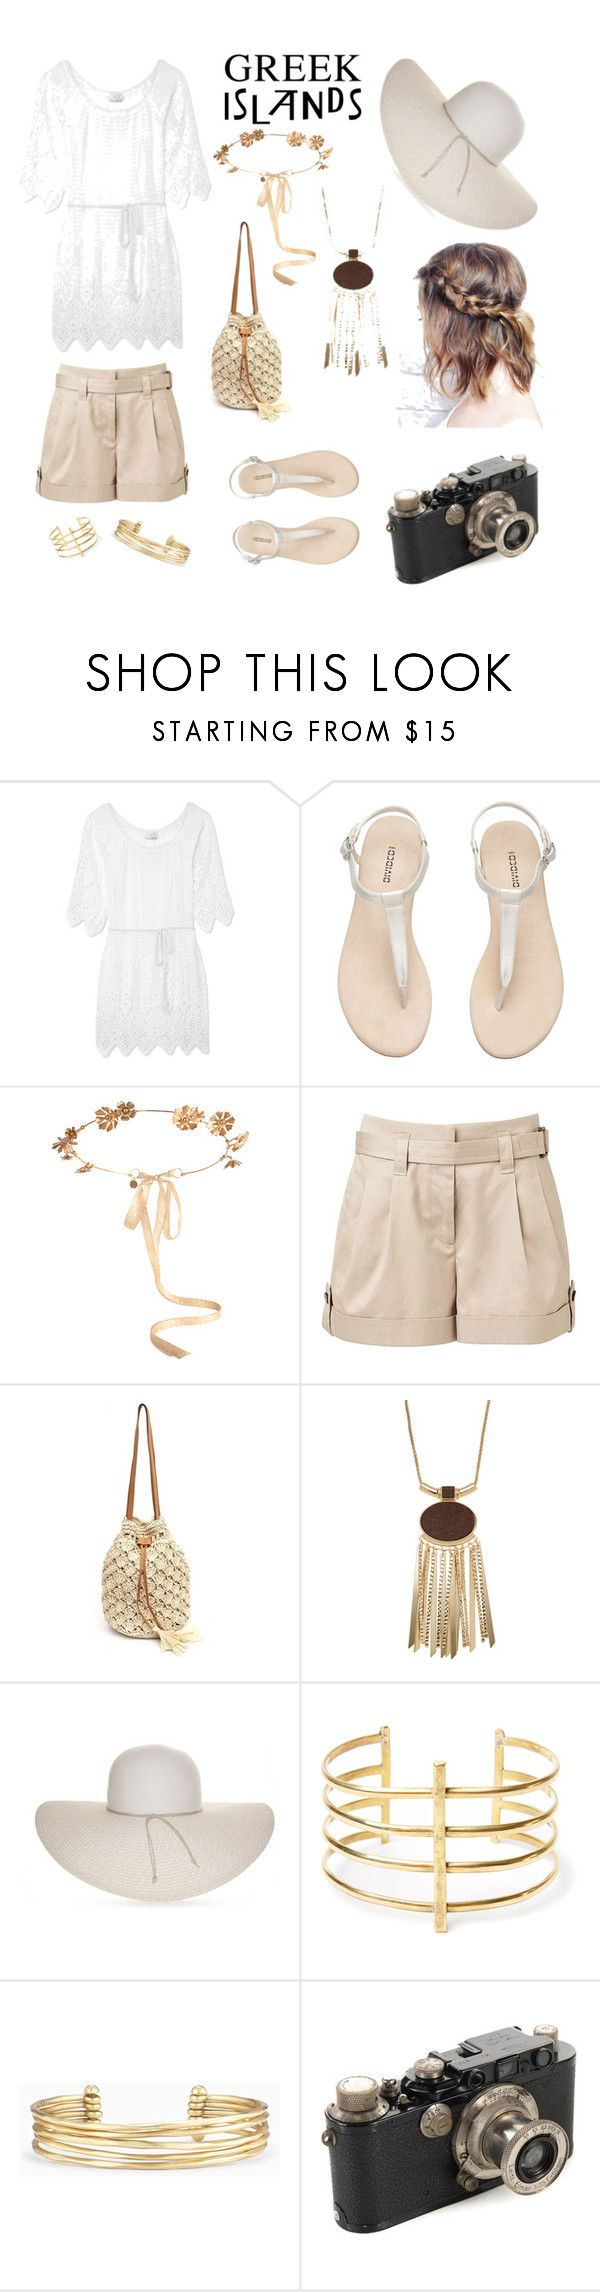 """Greek on Fleek"" by ferranong on Polyvore featuring Miguelina, Eugenia Kim, Witchery, Nine West, BauXo, Stella & Dot, Leica, Packandgo and greekislands"